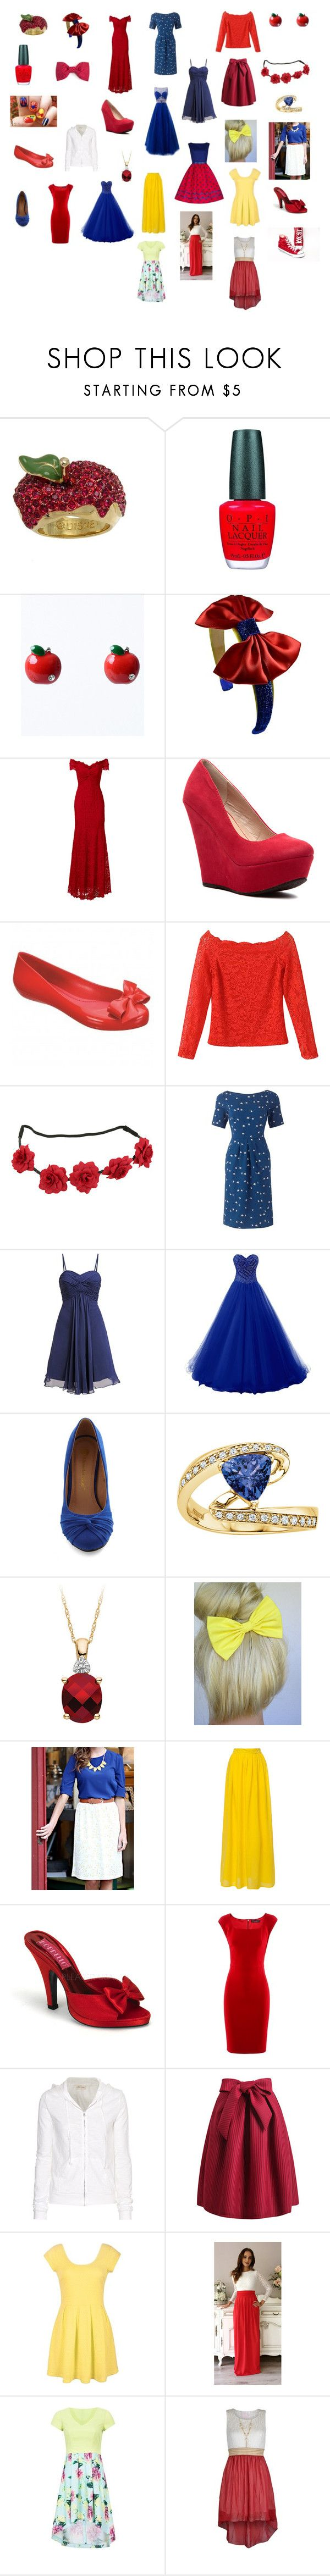 """""""Snow White's closet🍎"""" by hunterhayesfan92 ❤ liked on Polyvore featuring Disney Couture, OPI, Nicole Miller, mel, Laona, Effy Jewelry, ModestPop, Dolce&Gabbana and American Vintage"""